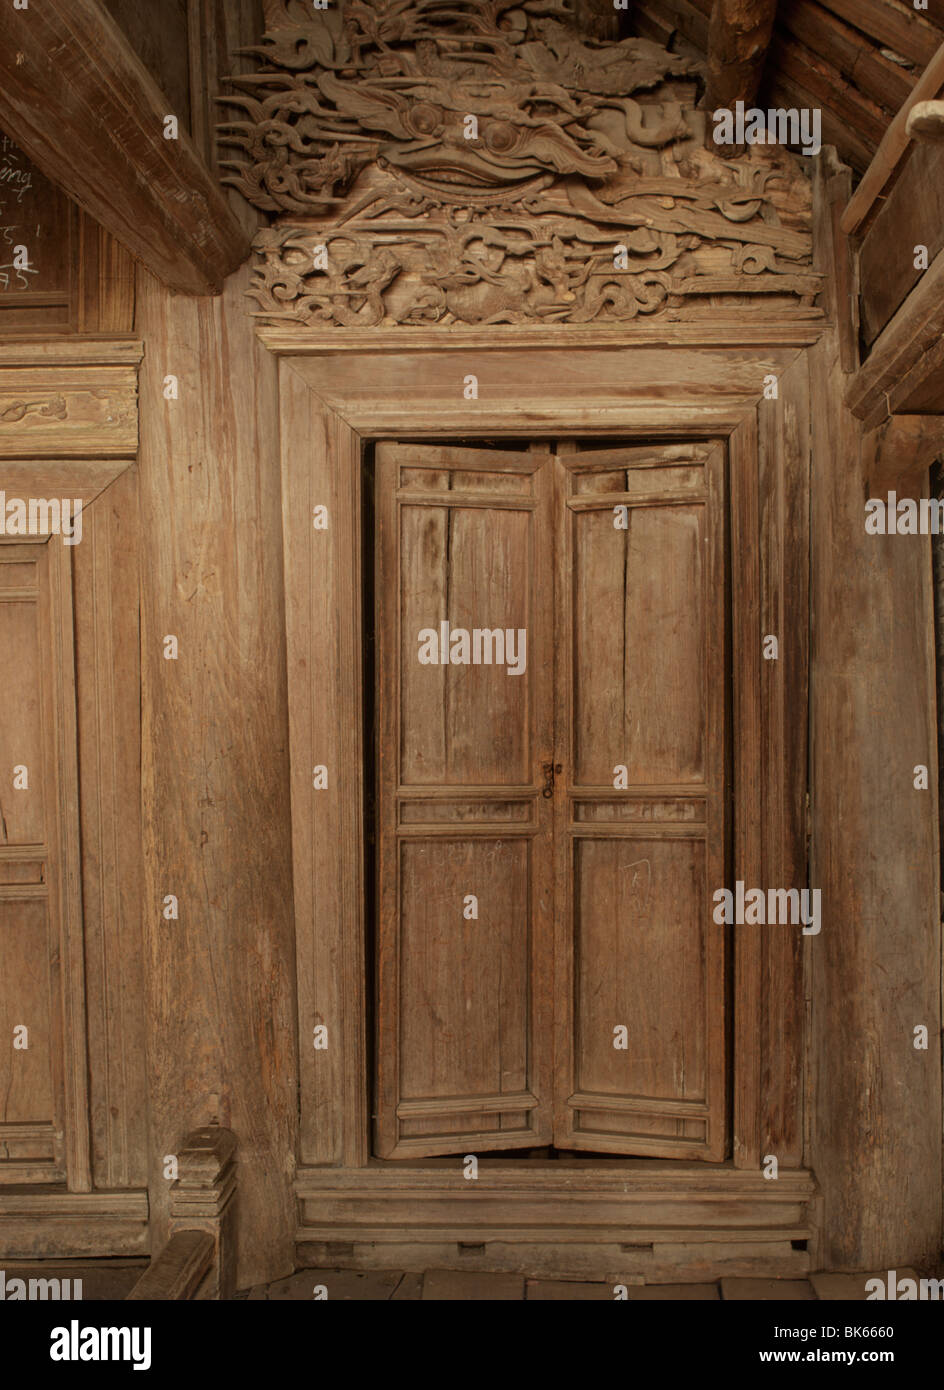 Wooden doors of Dinh Tay Dang, Ha Tay province, Vietnam, Indochina, Southeast Asia, Asia - Stock Image